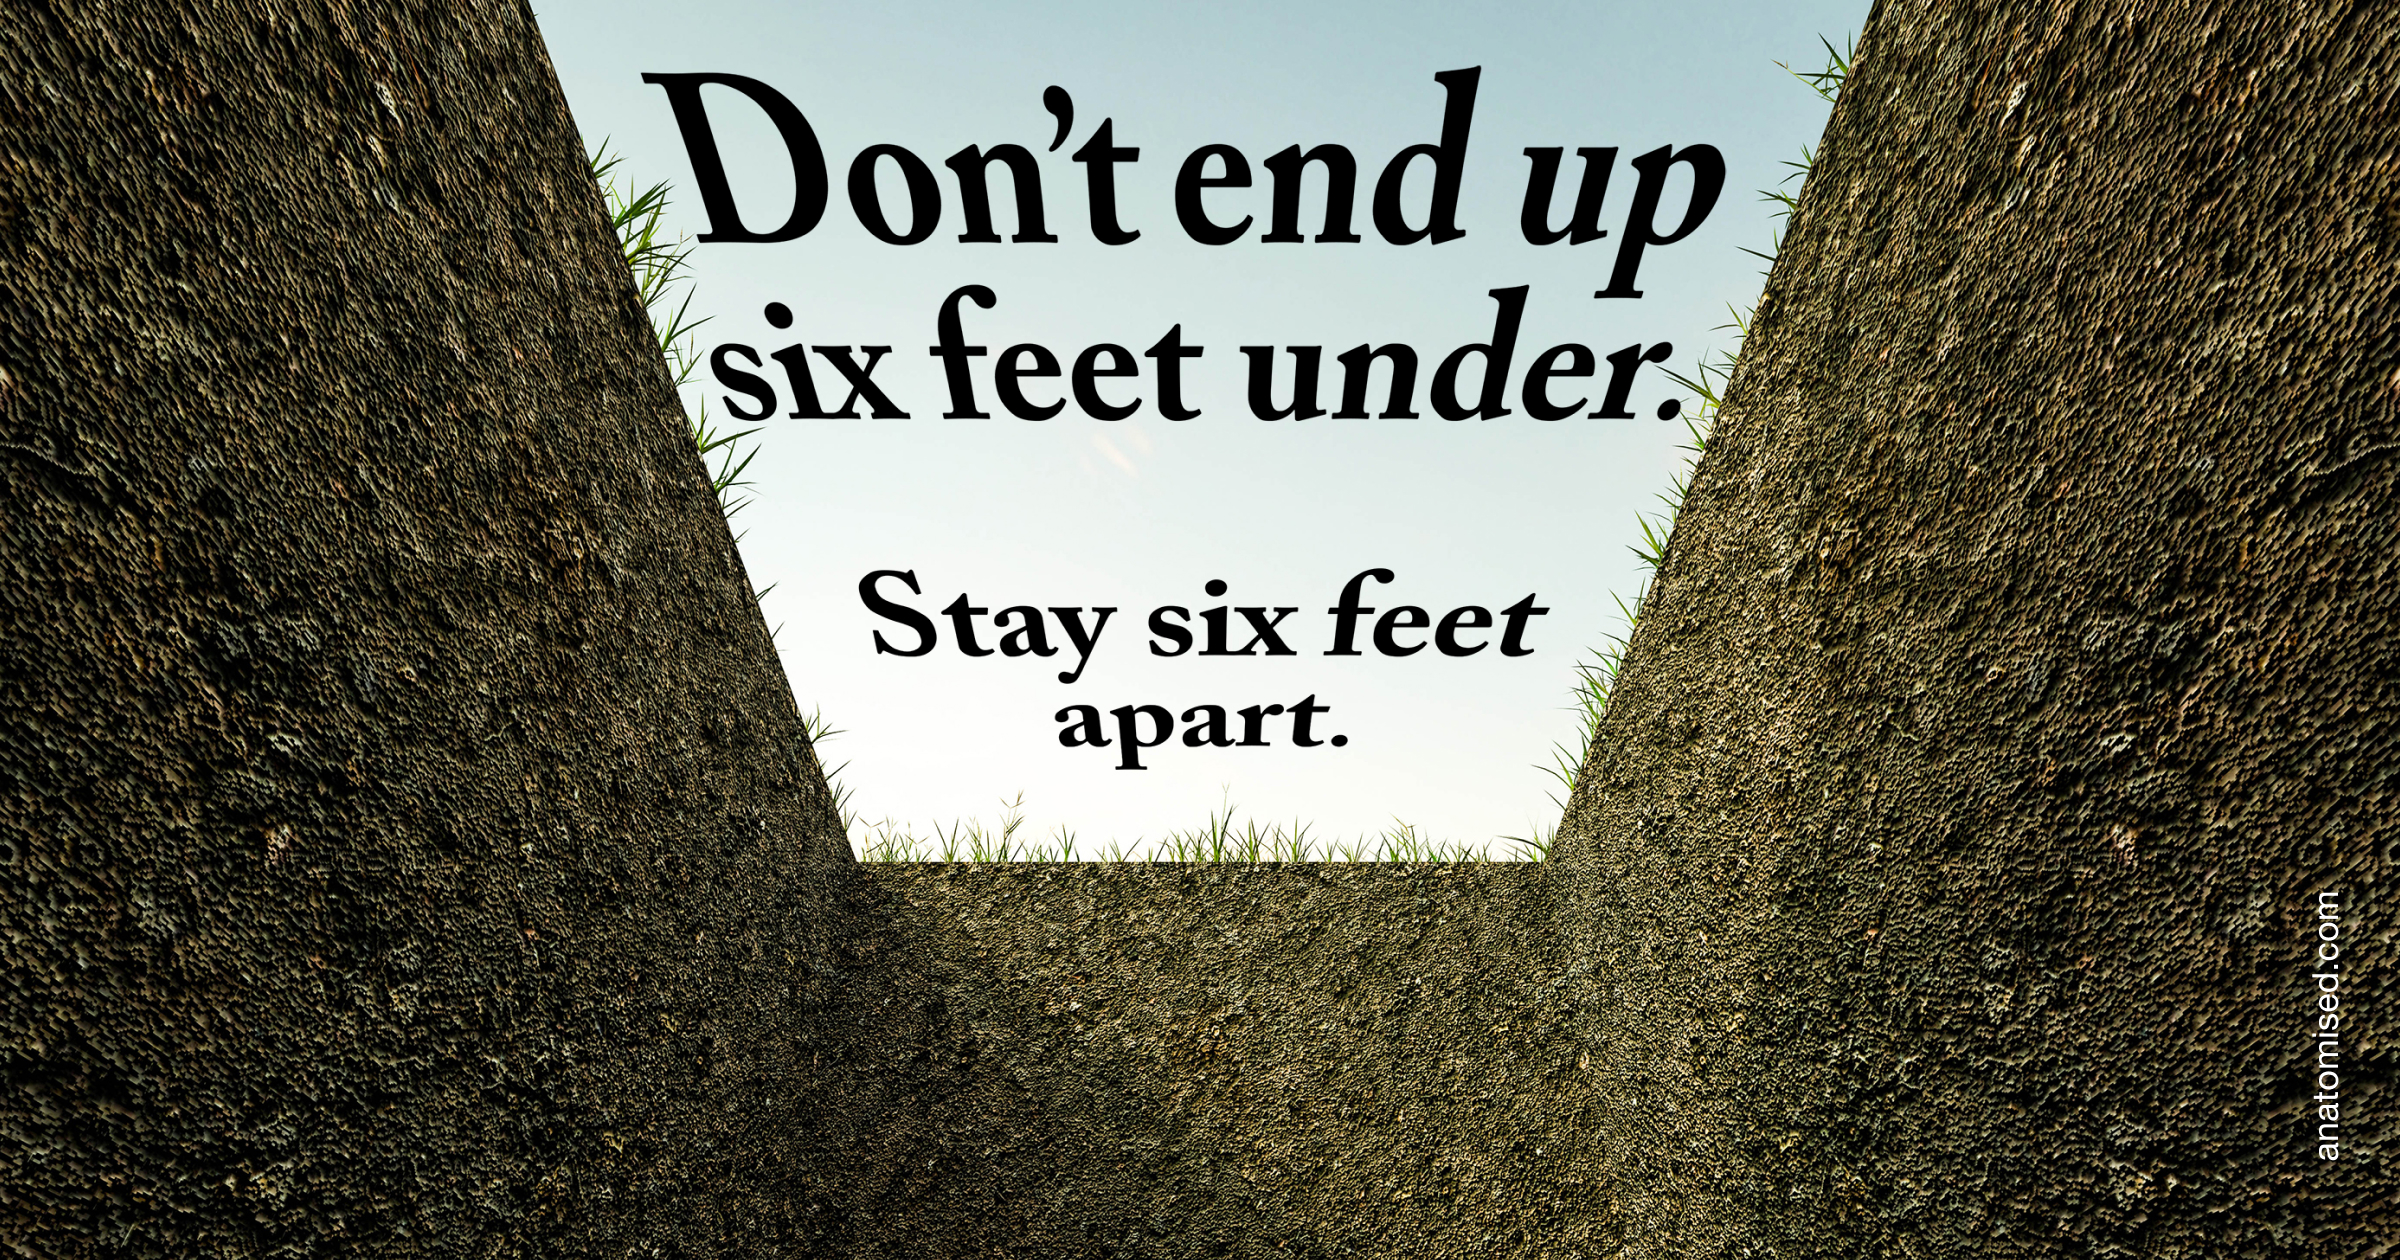 Six feet under, or six feet apart